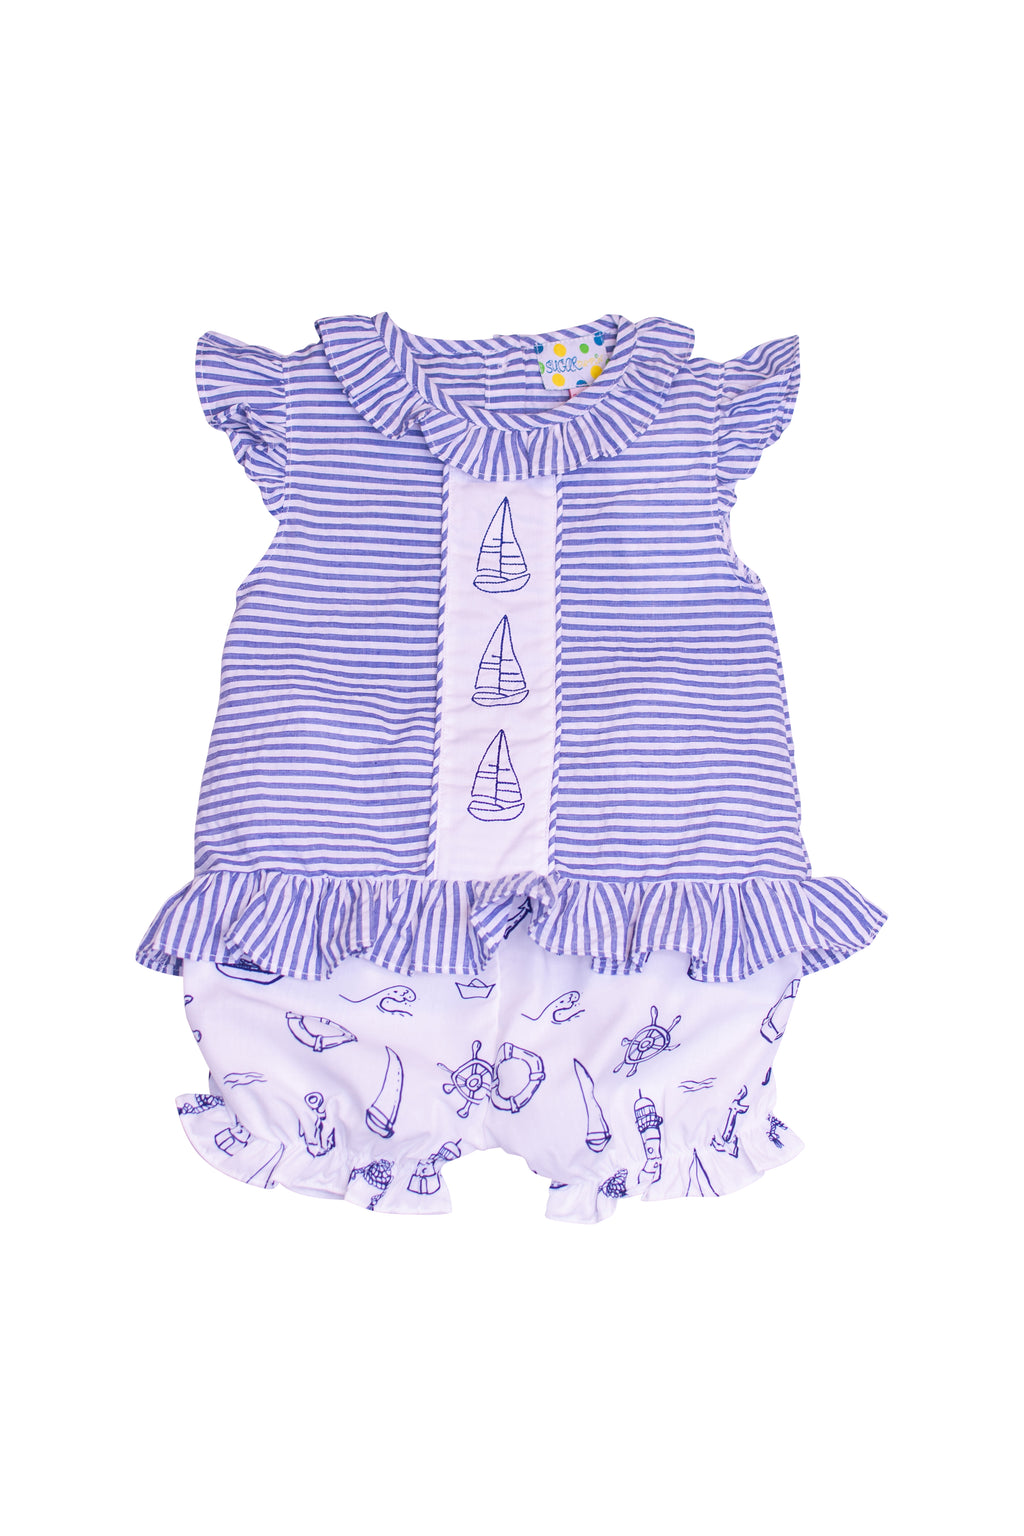 Girls Seersucker/Sailboat Bloomer Set